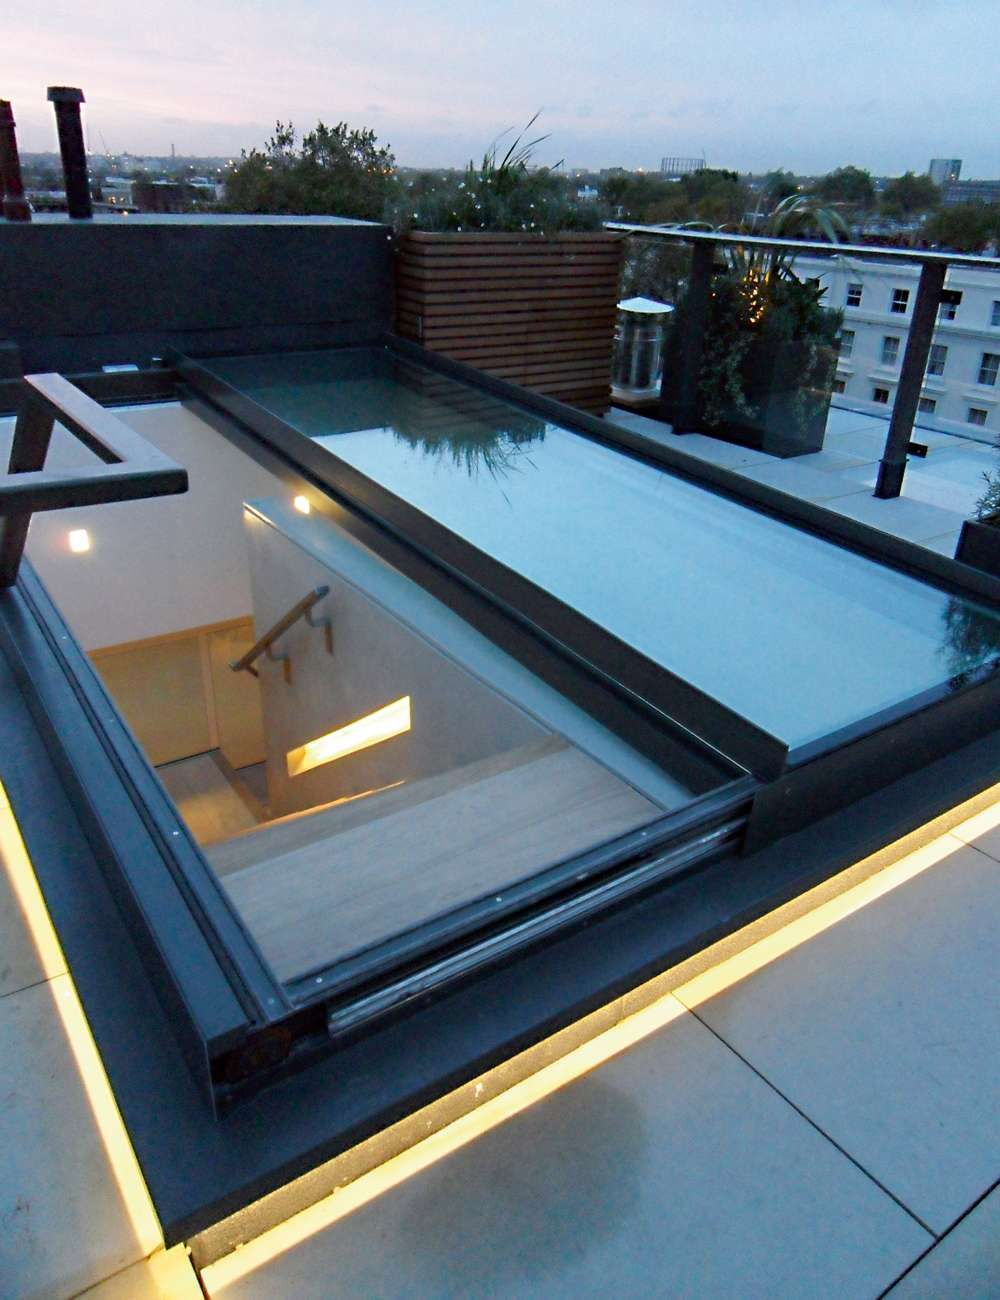 Choosing Rooflights Homebuilding Renovating Glass Roof Green Roof Roof Architecture